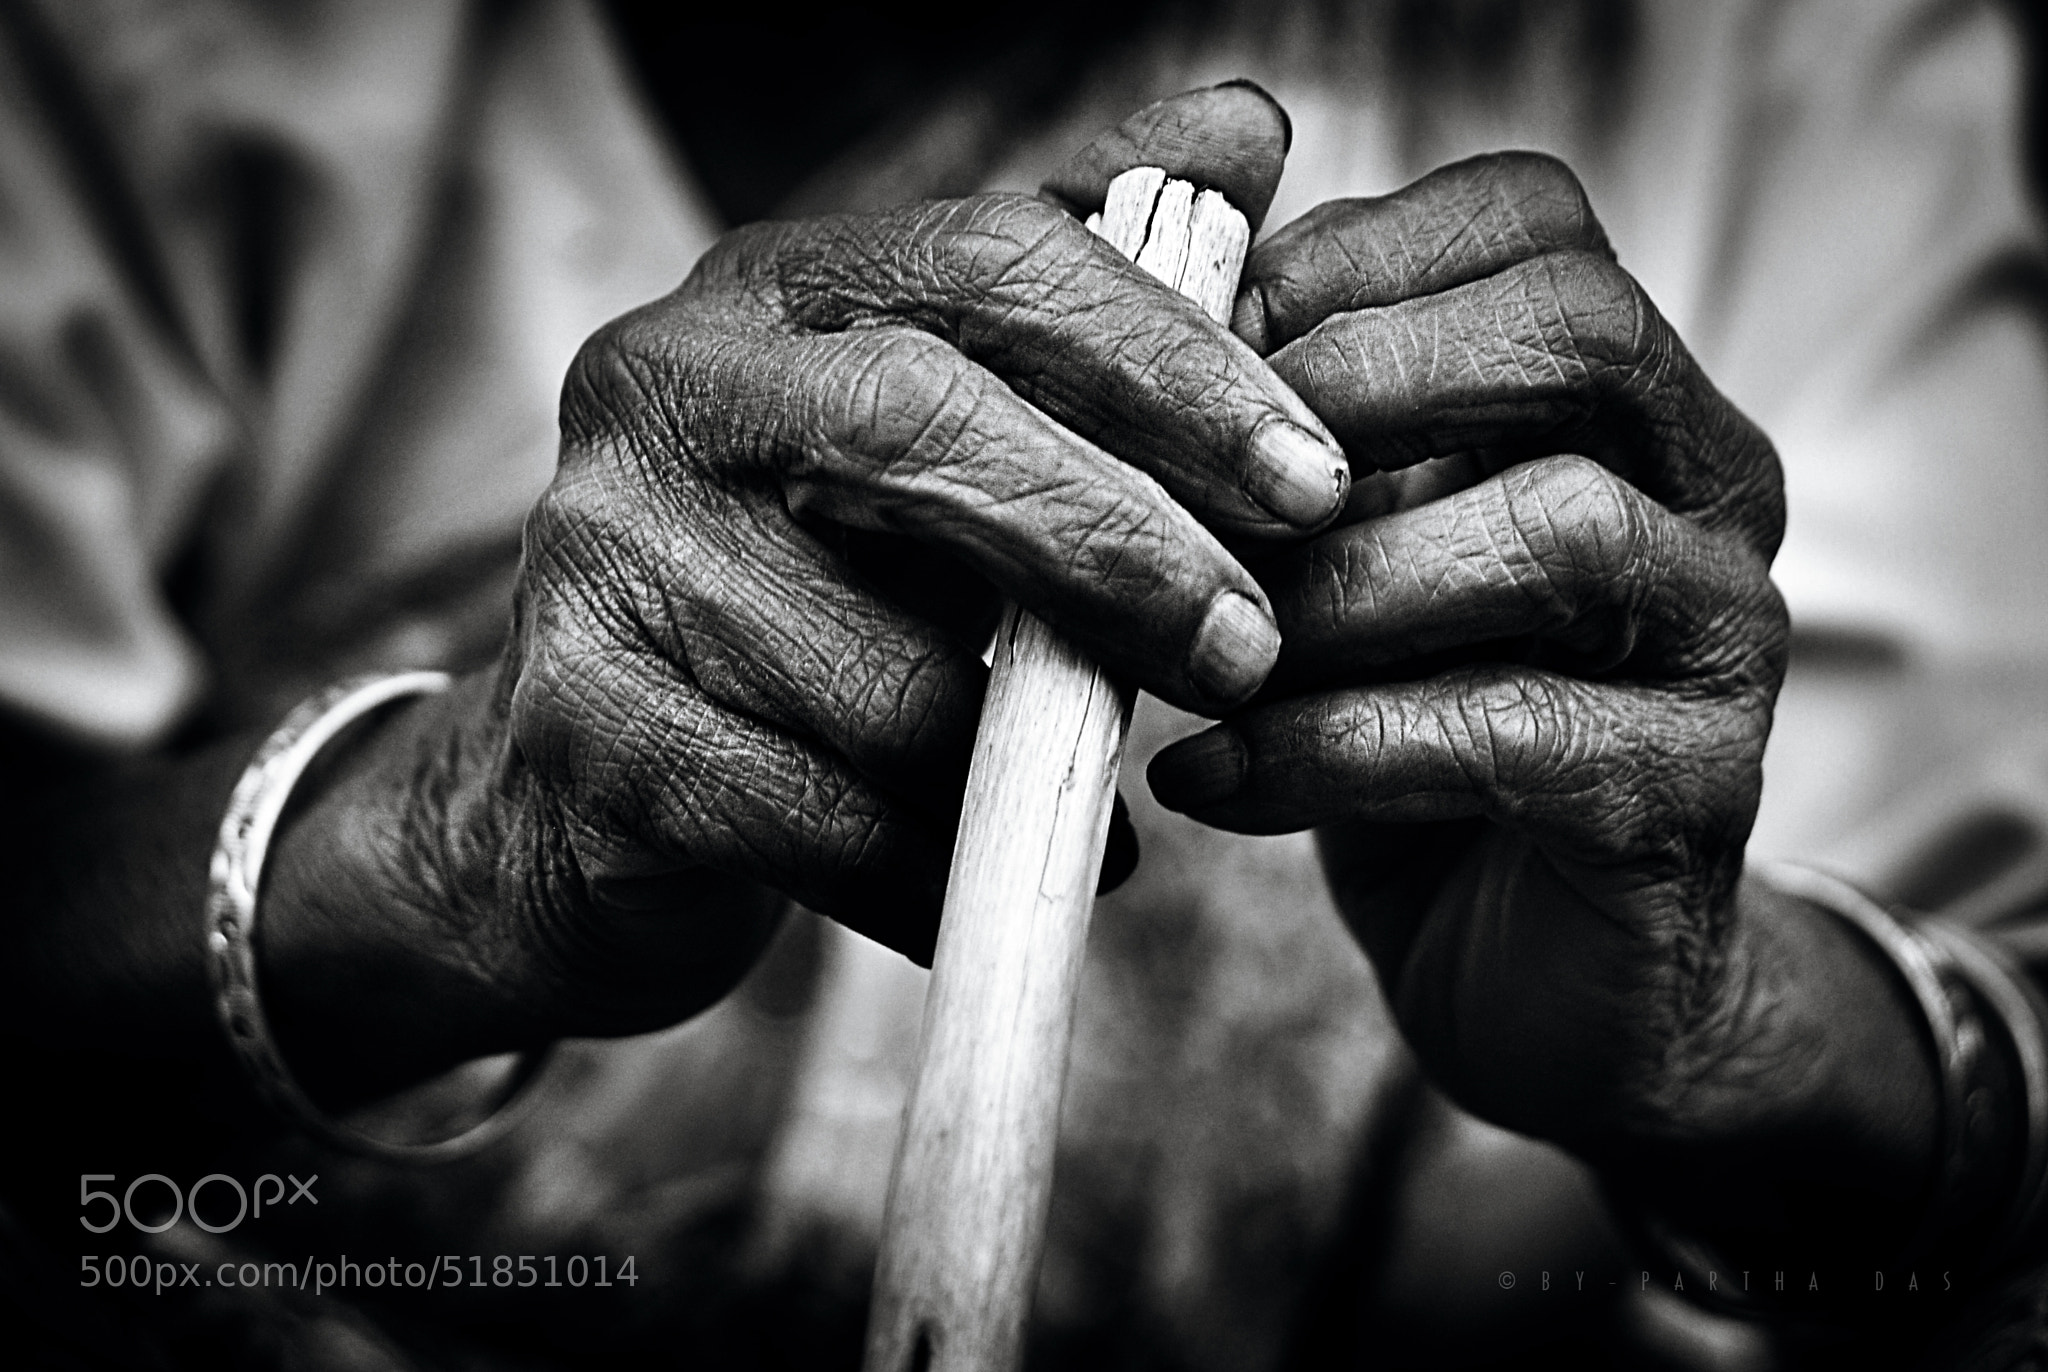 Photograph life & time... by Partha Das on 500px